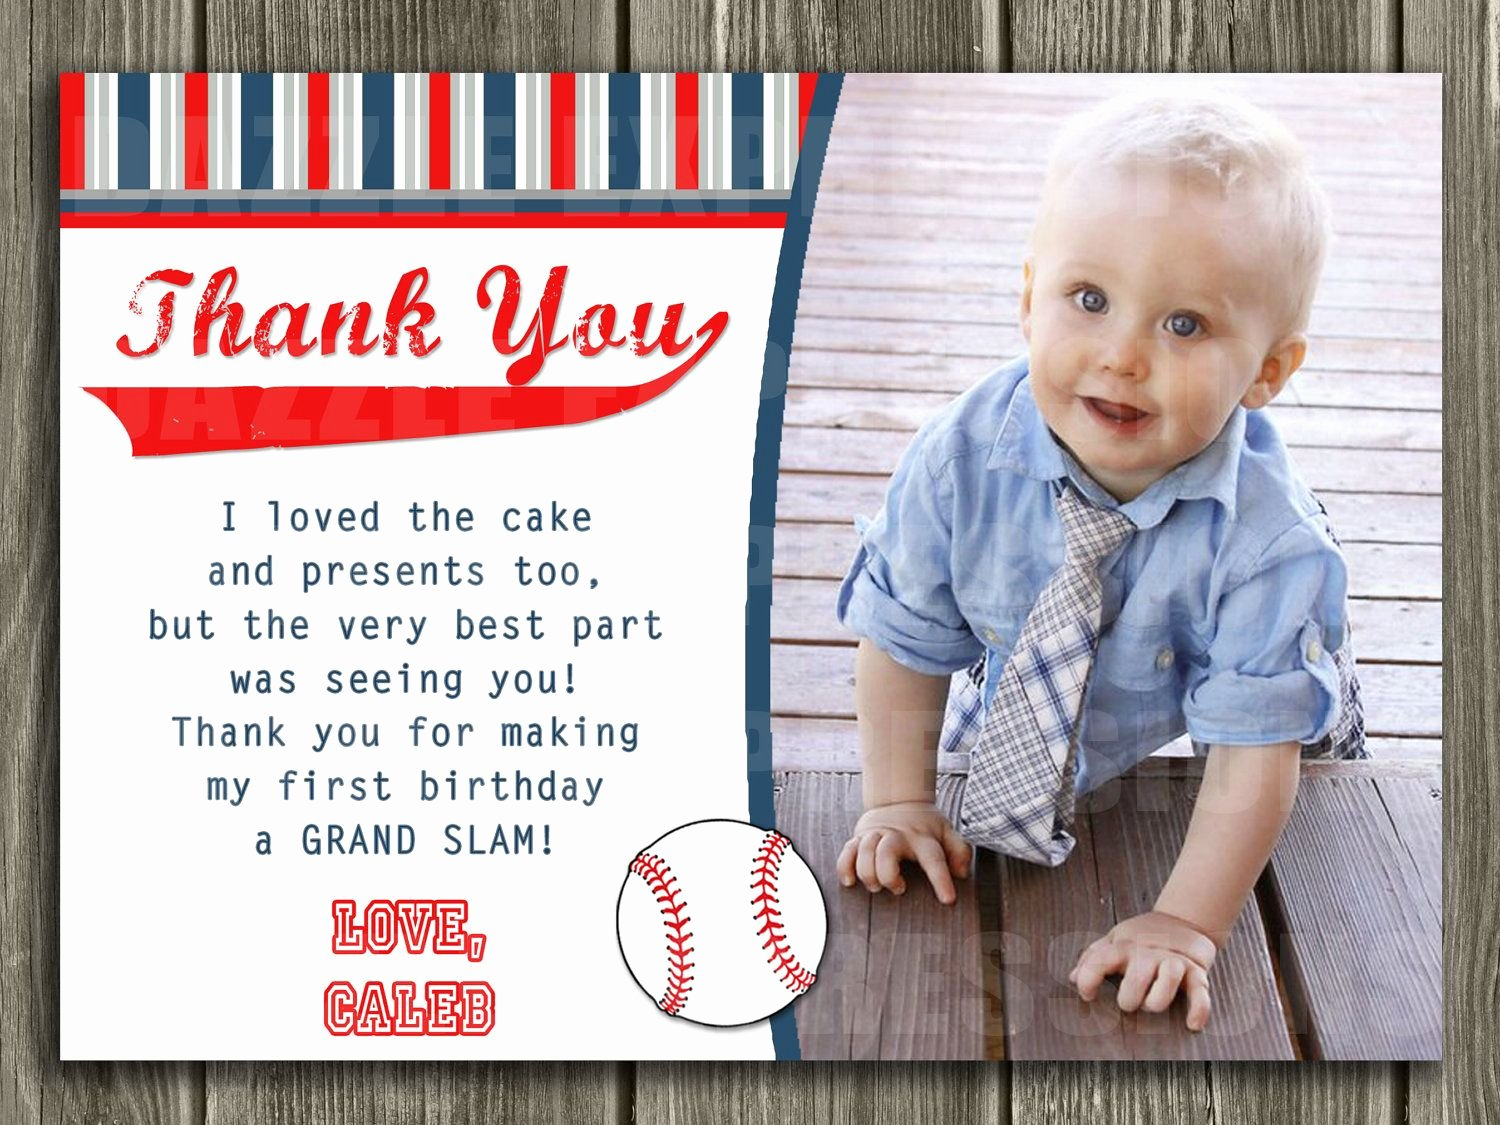 1st Birthday Thank You Cards Luxury Baseball Thank You Card Printable $10 00 Via Etsy Joey S 1st Birthday